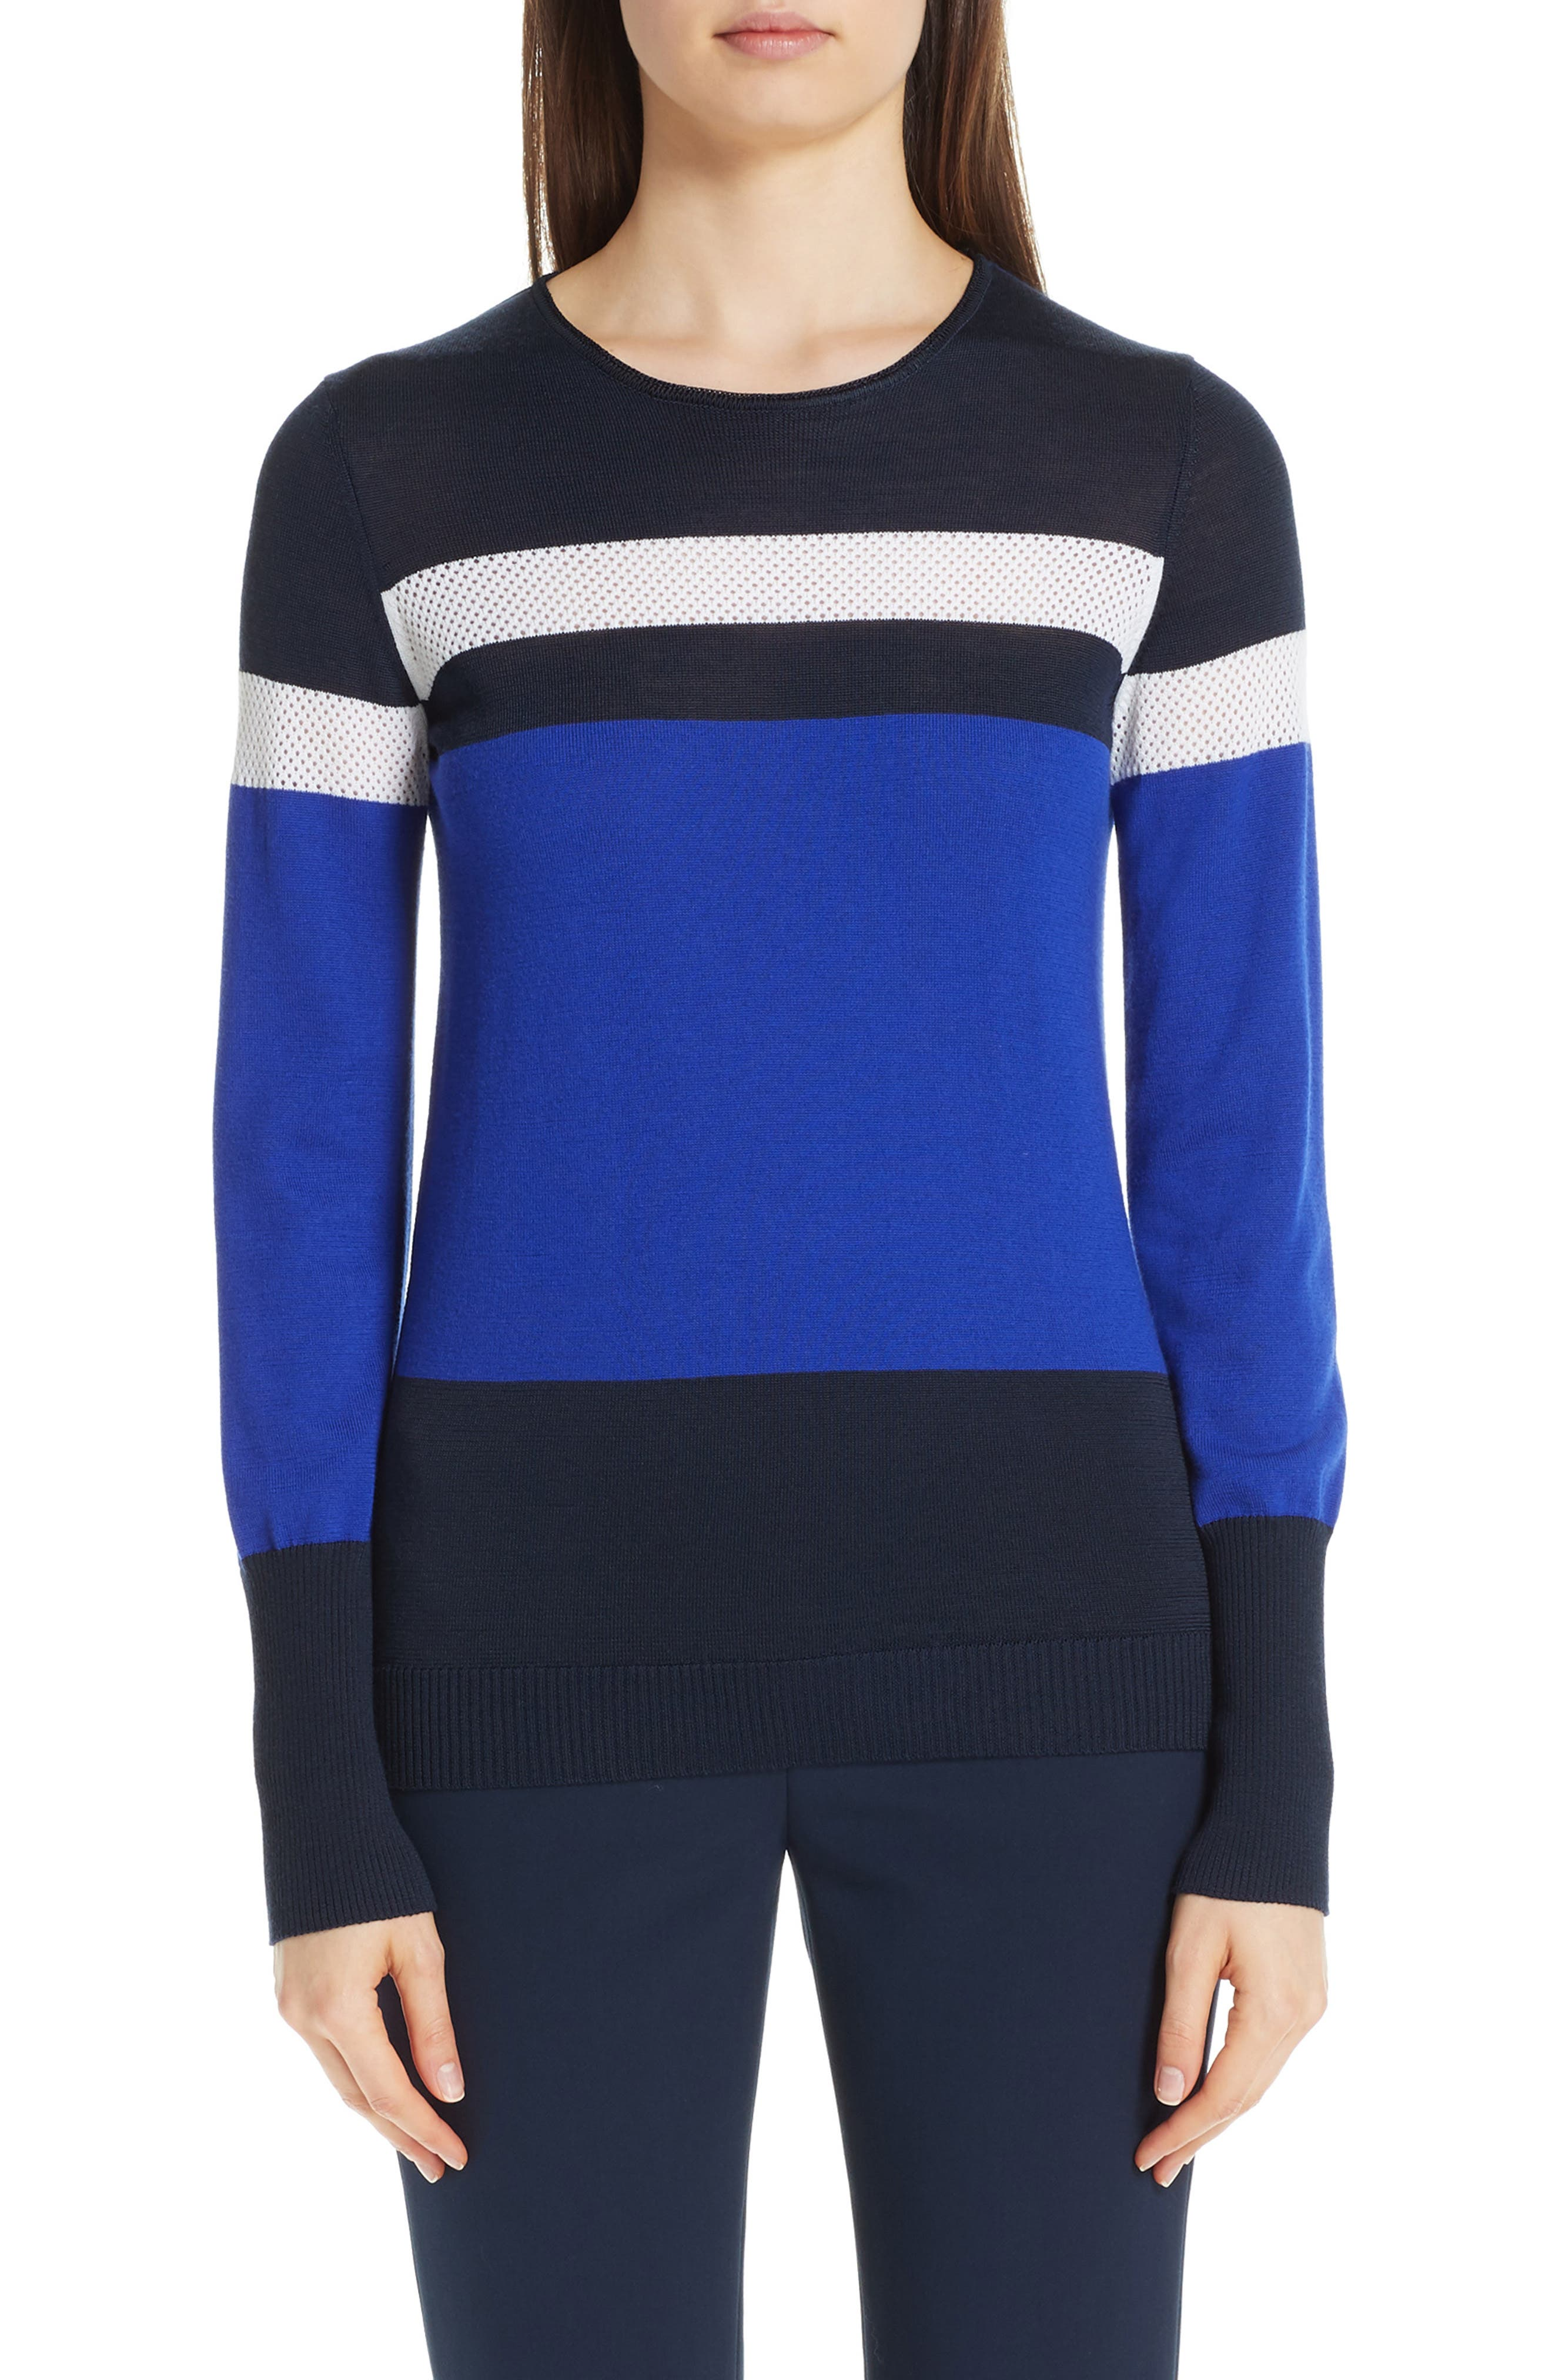 Mesh Panel Colorblock Jacquard Knit Sweater in Navy Multi